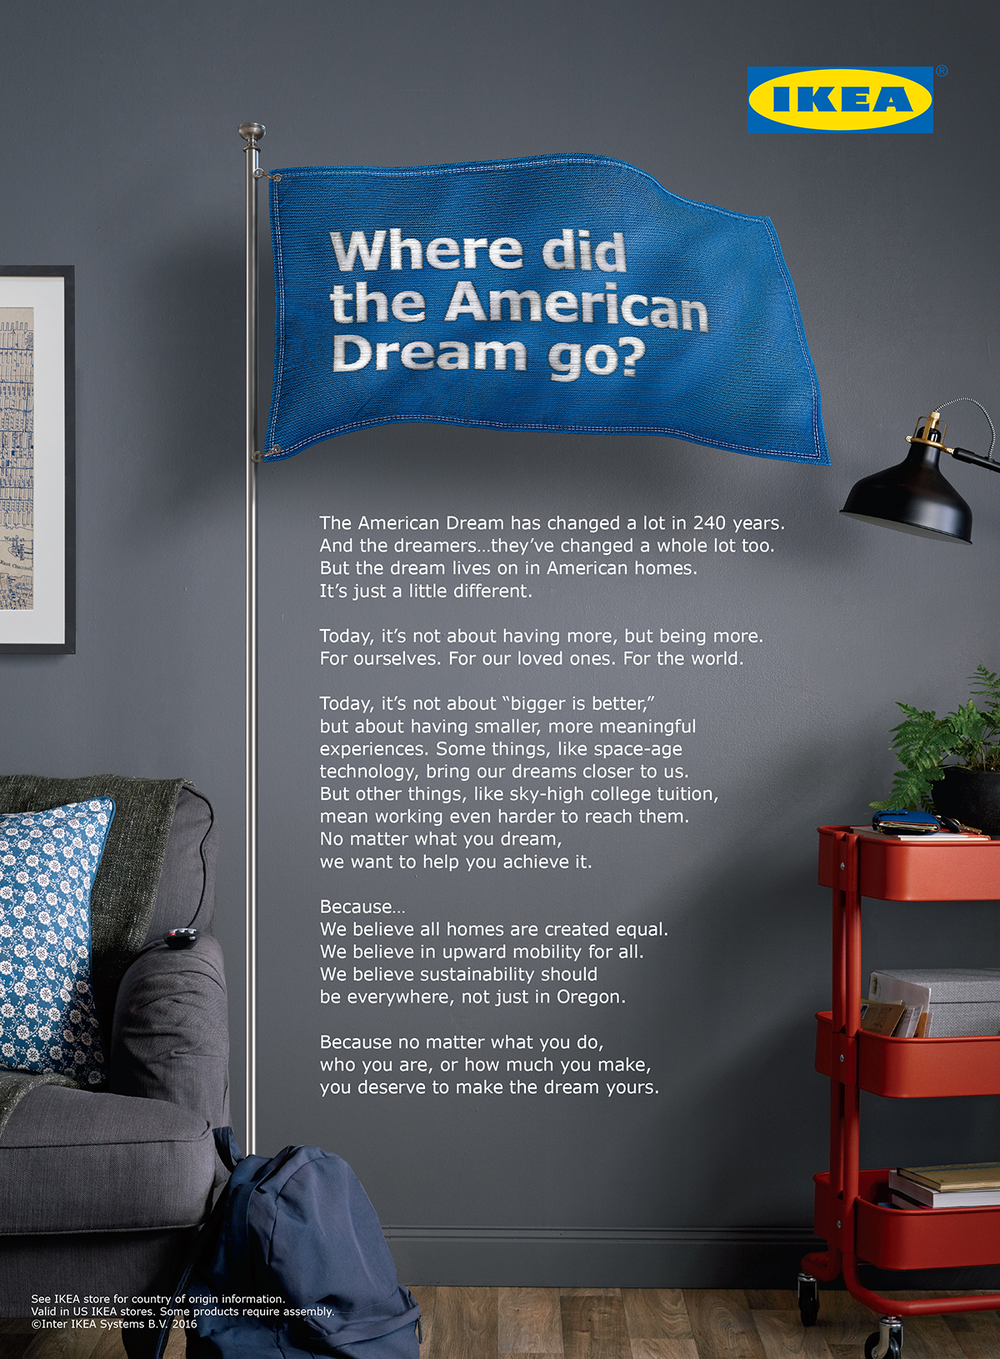 ikea-american-dream-1pg-01-2016.png